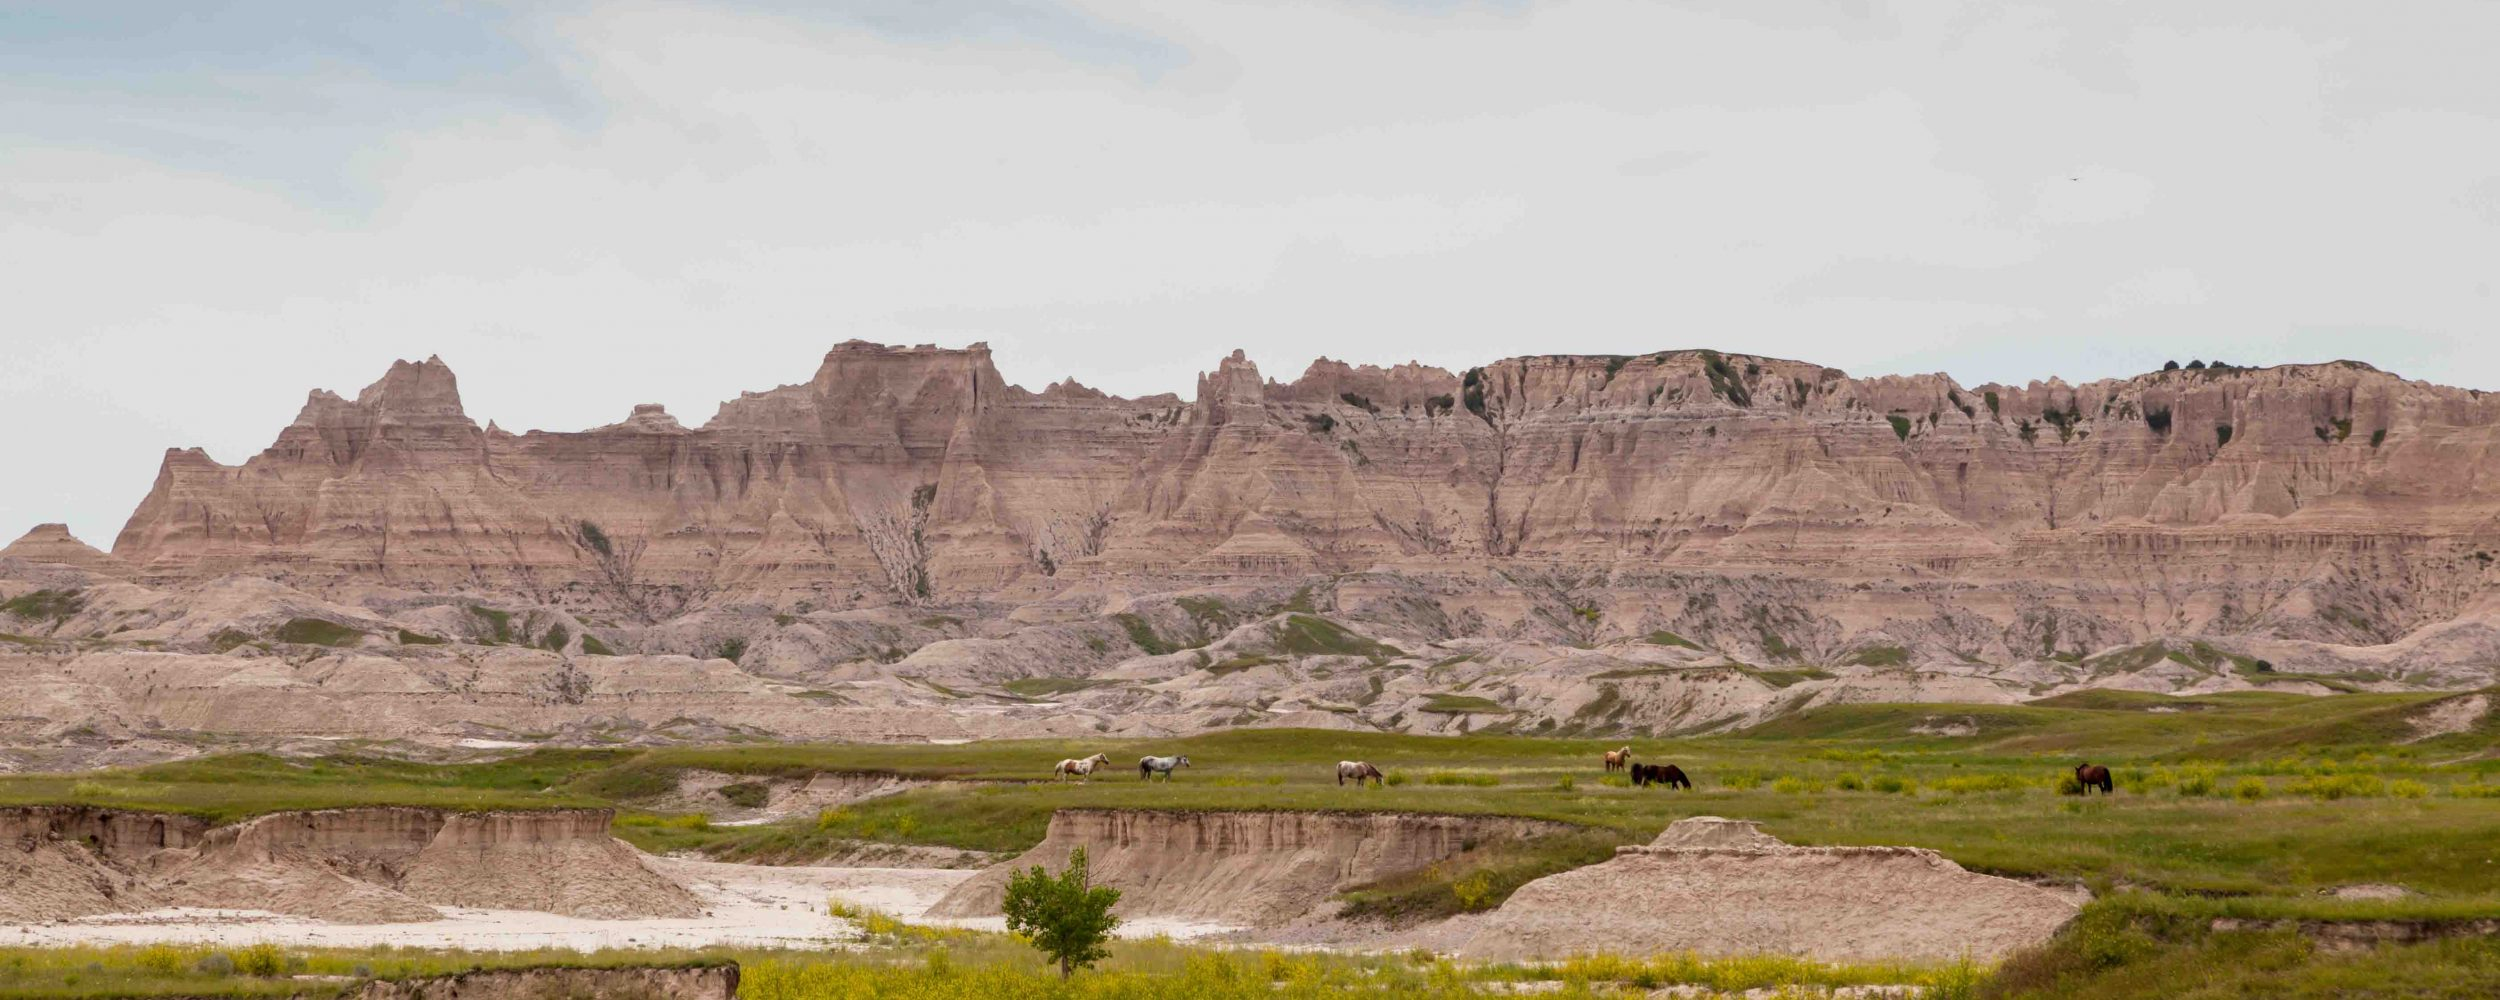 Seven horses in a green field below the dynamically carved mountains of the Badlands in South Dakota.